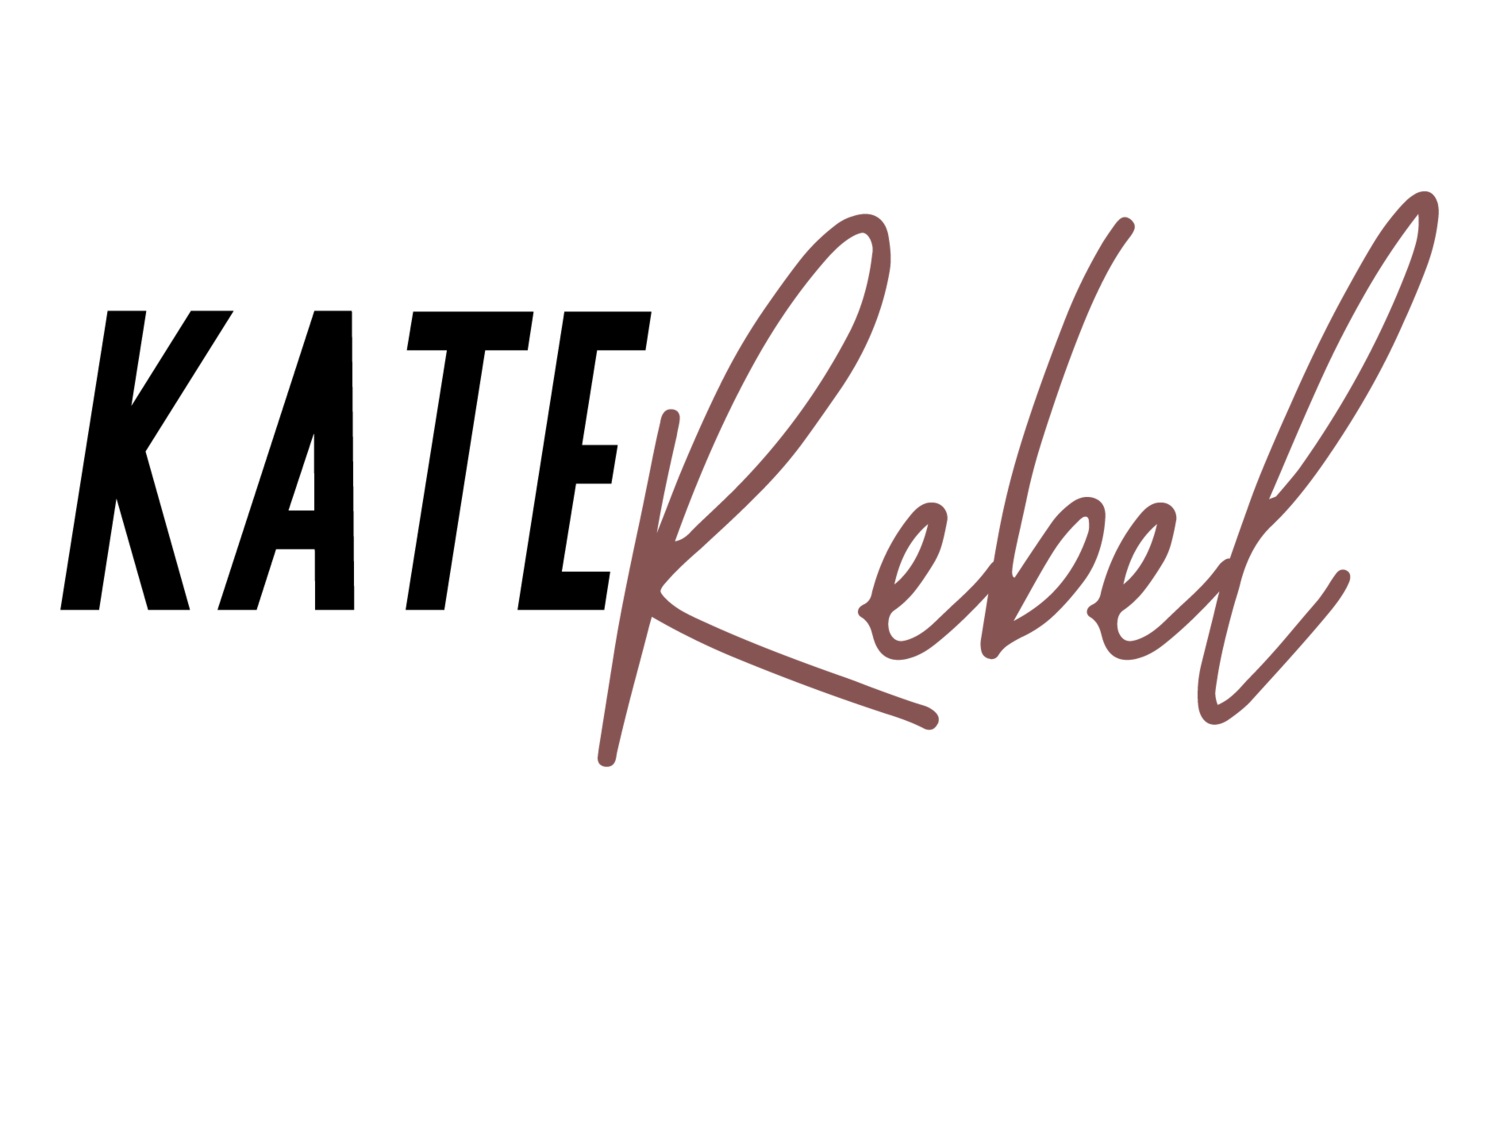 Kate Rebel